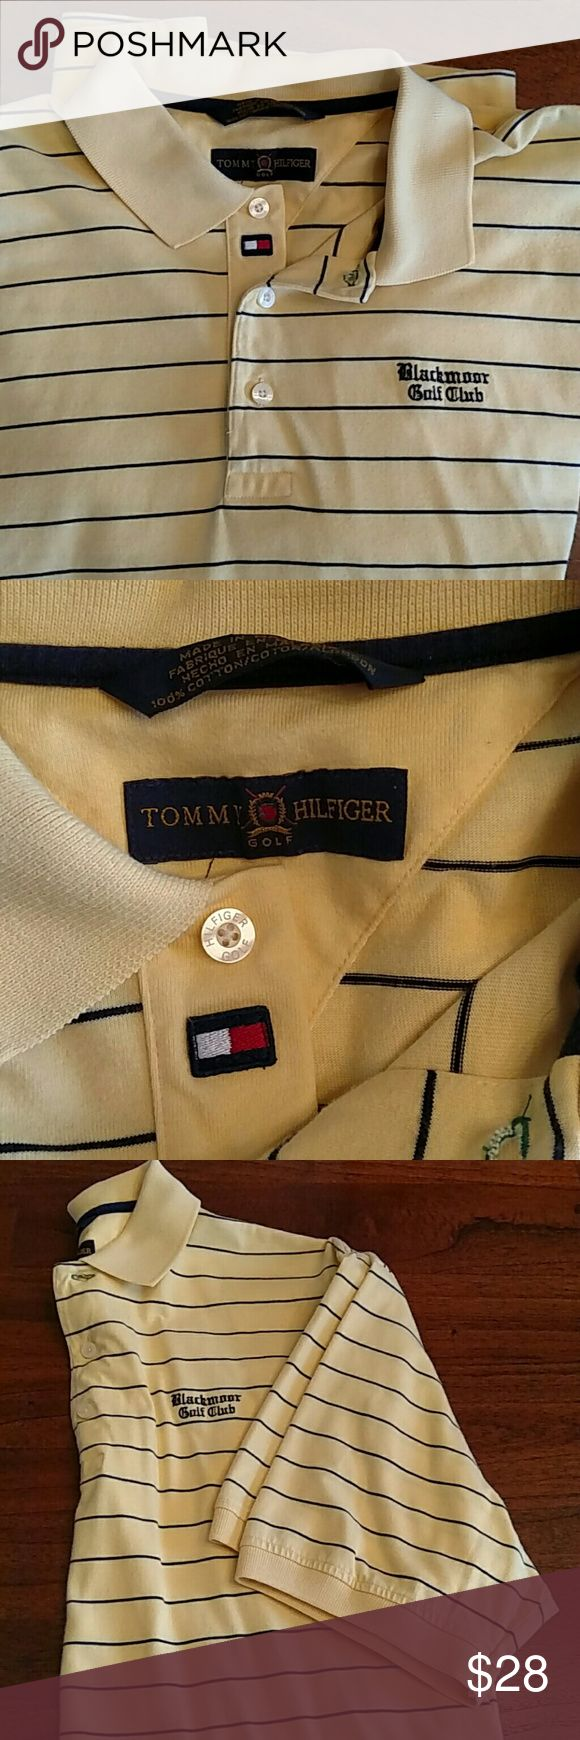 """Tommy Hilfiger Golf Shirt Sharp looking striped golf shirt. Tag was removed as far as size but measures across chest as 21"""" and armpit to hem measures 18"""". Tommy Hilfiger Shirts Polos"""